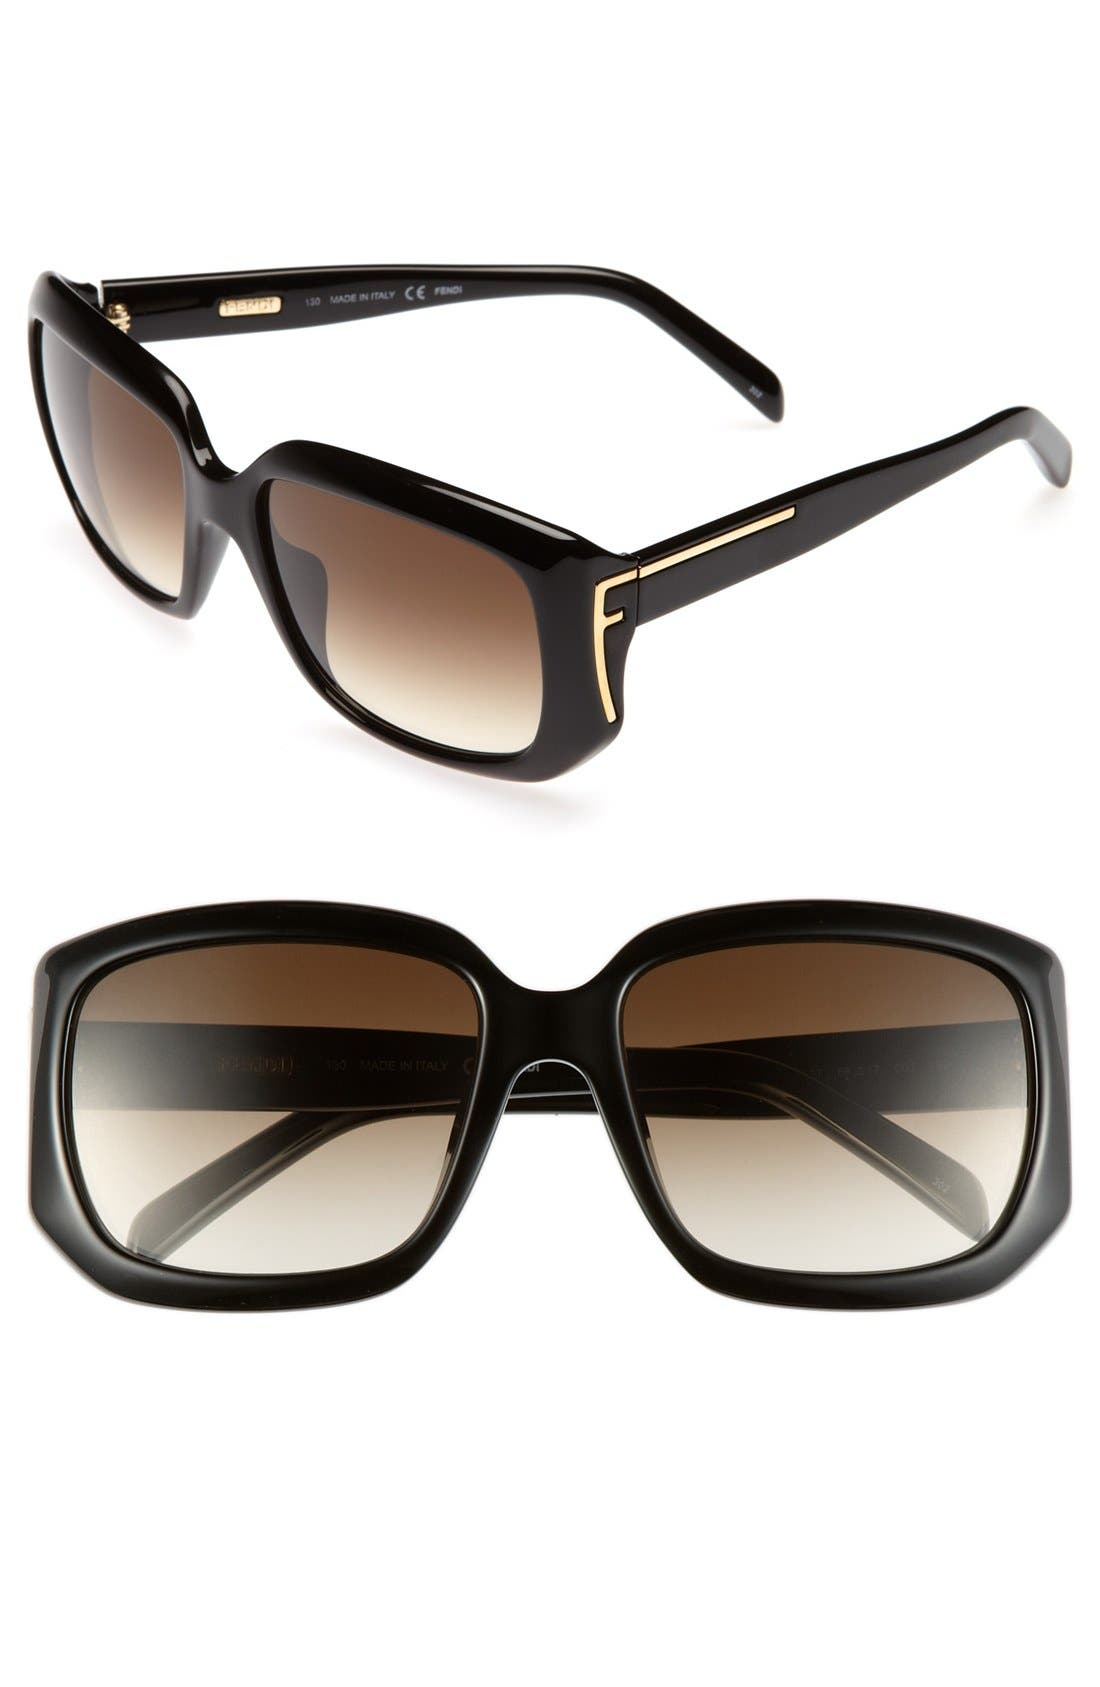 Main Image - Fendi 56mm Oversized Sunglasses